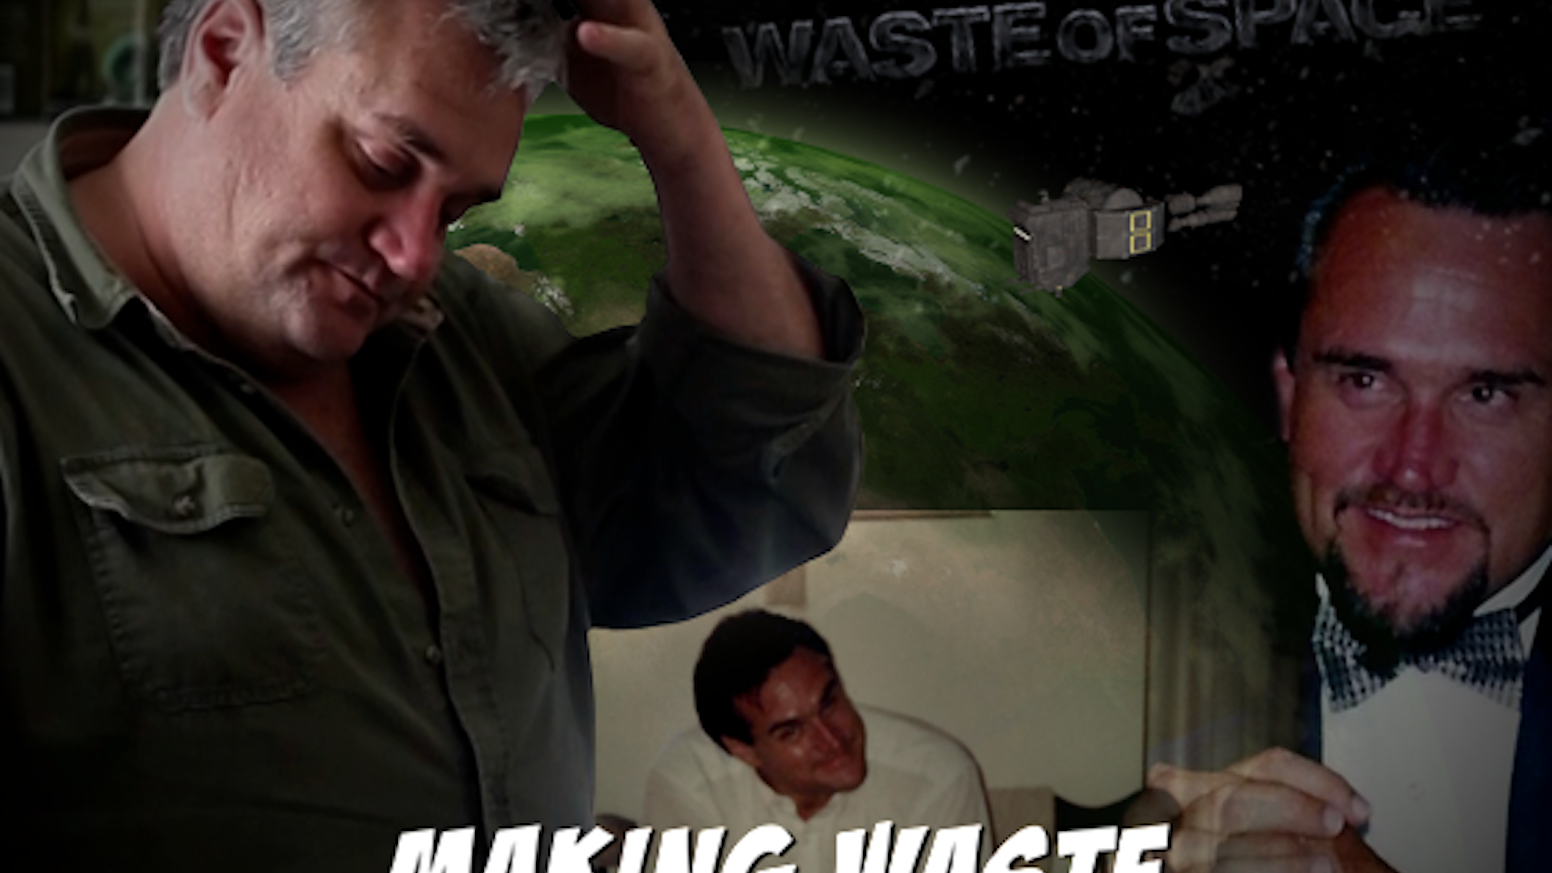 making waste how one man made a movie and ruined his life by stan